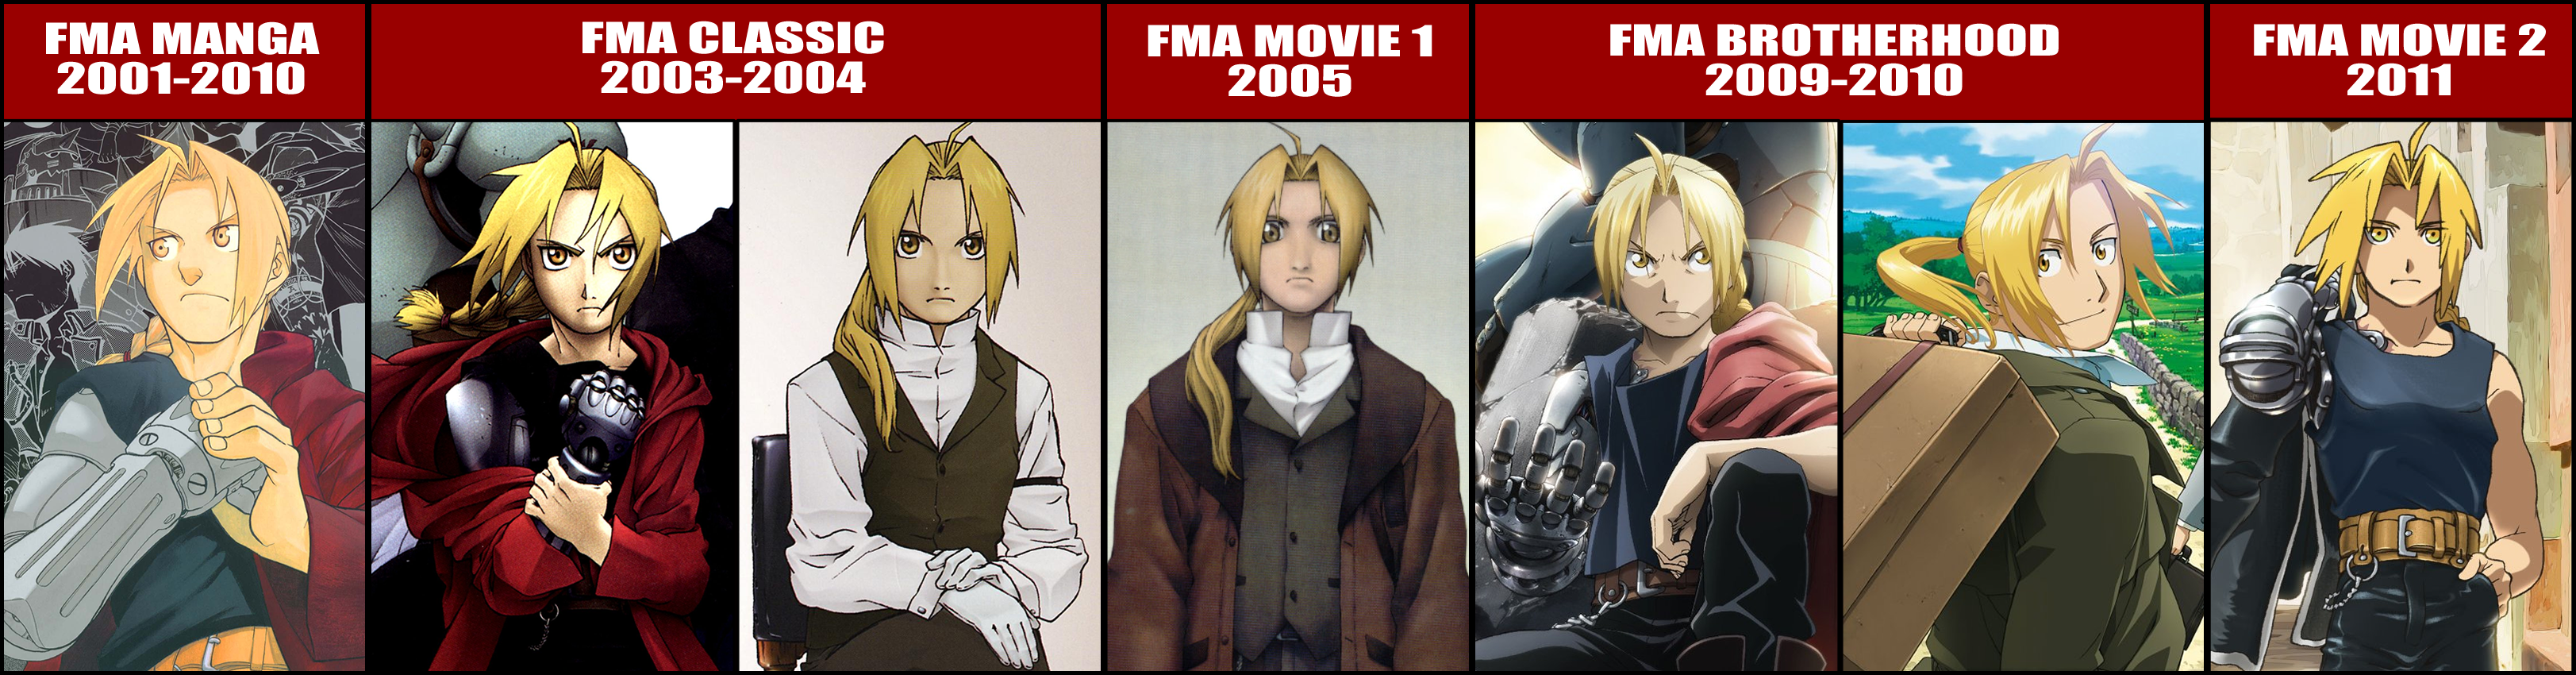 Things that should be added in this page   Edward Elric Brotherhood Older